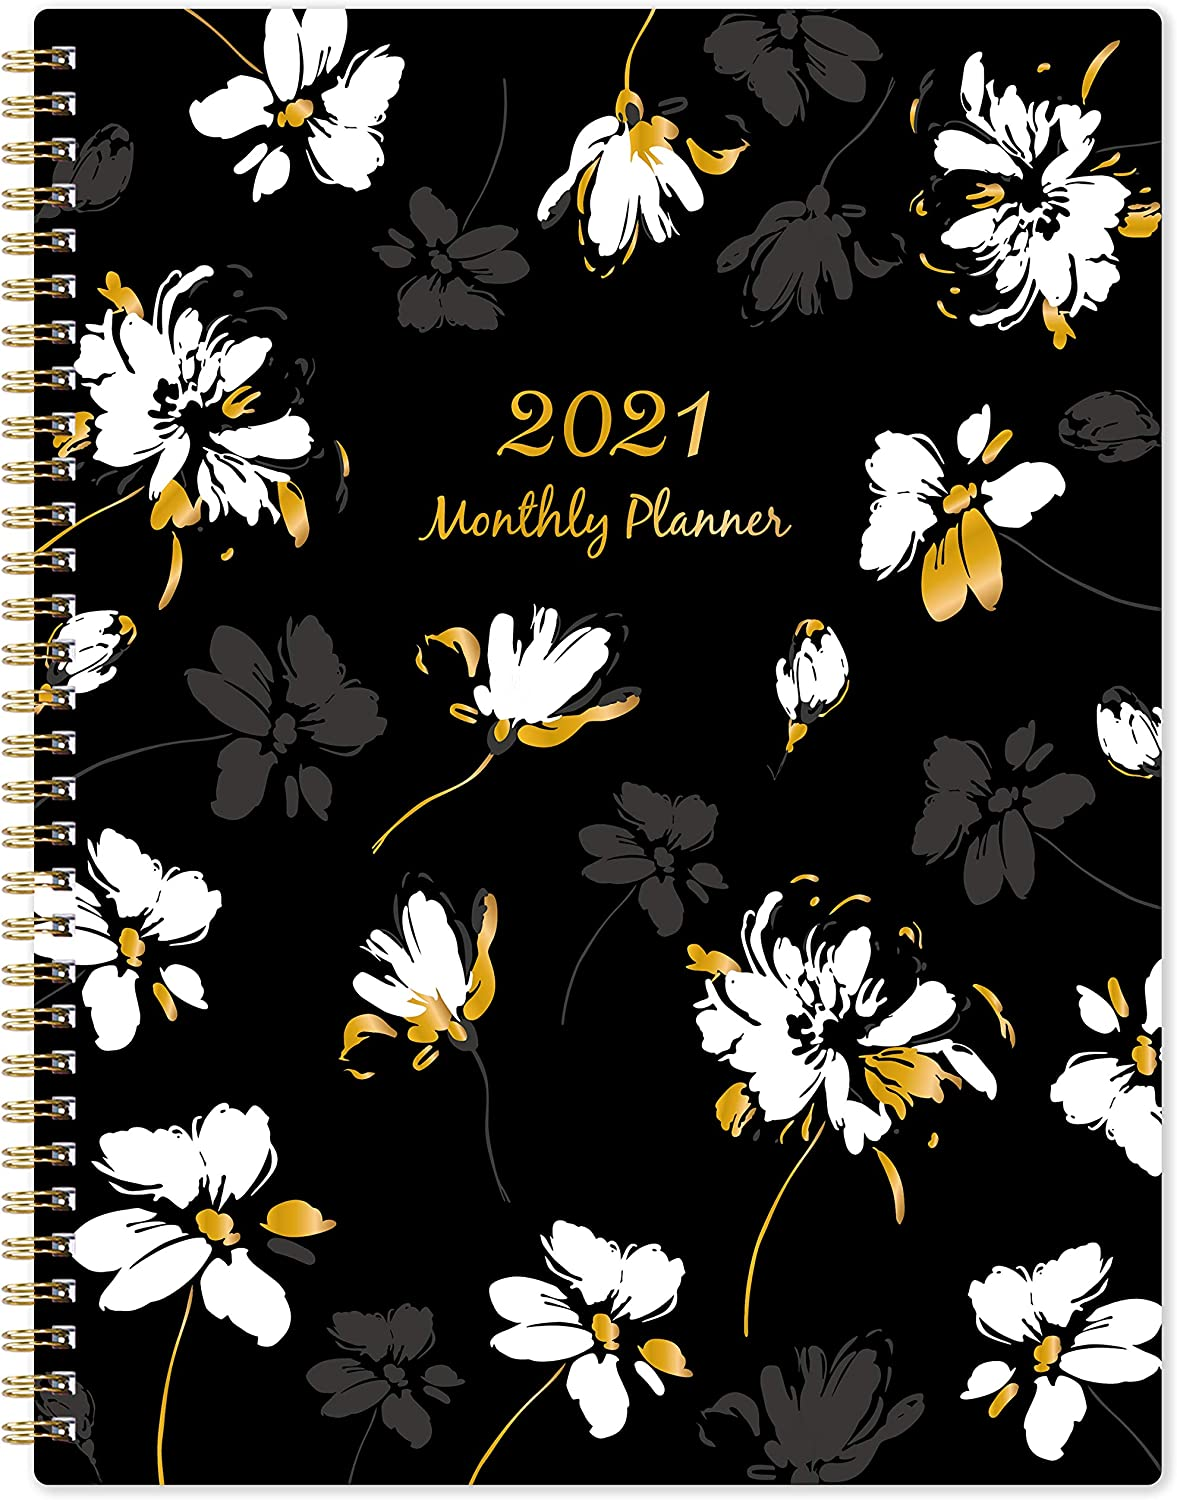 """2021 Monthly Planner - 12-Month Planner with Tabs & Double Side Pocket & Label, Contacts and Passwords, Floral Calendar Planners, Jan 2021 - Dec 2021, 9""""x 11"""", Twin-Wire Binding"""